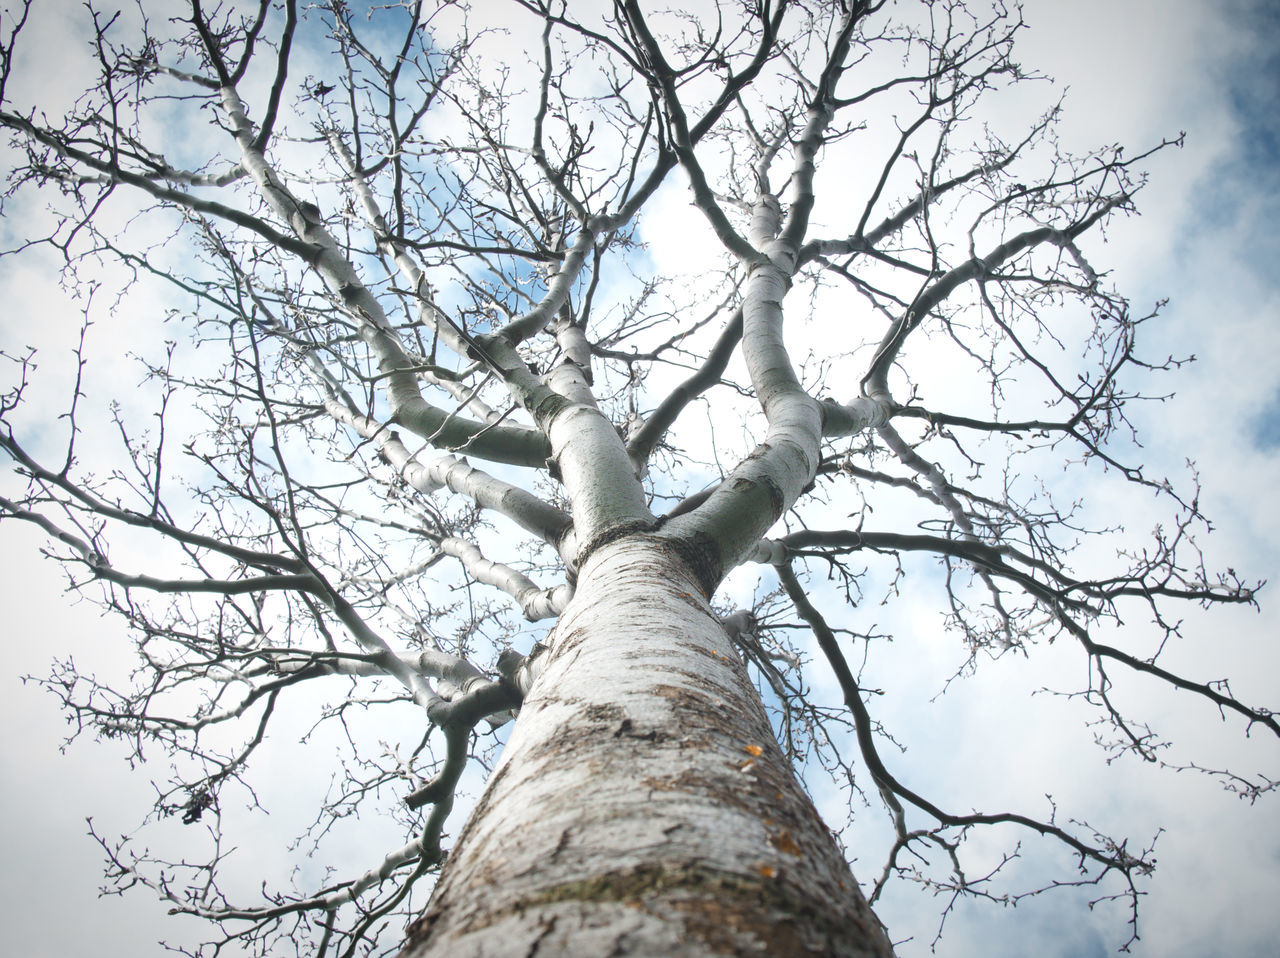 Tree in winter, California Tree Sky Outdoors No People Day California Nature Lines Growth Branches Trunk Tranquility Branch Beauty In Nature Bark Branches And Sky Dramatic Angles Lines In The Sky Winter Cloudy Sky Nature_collection Leafless